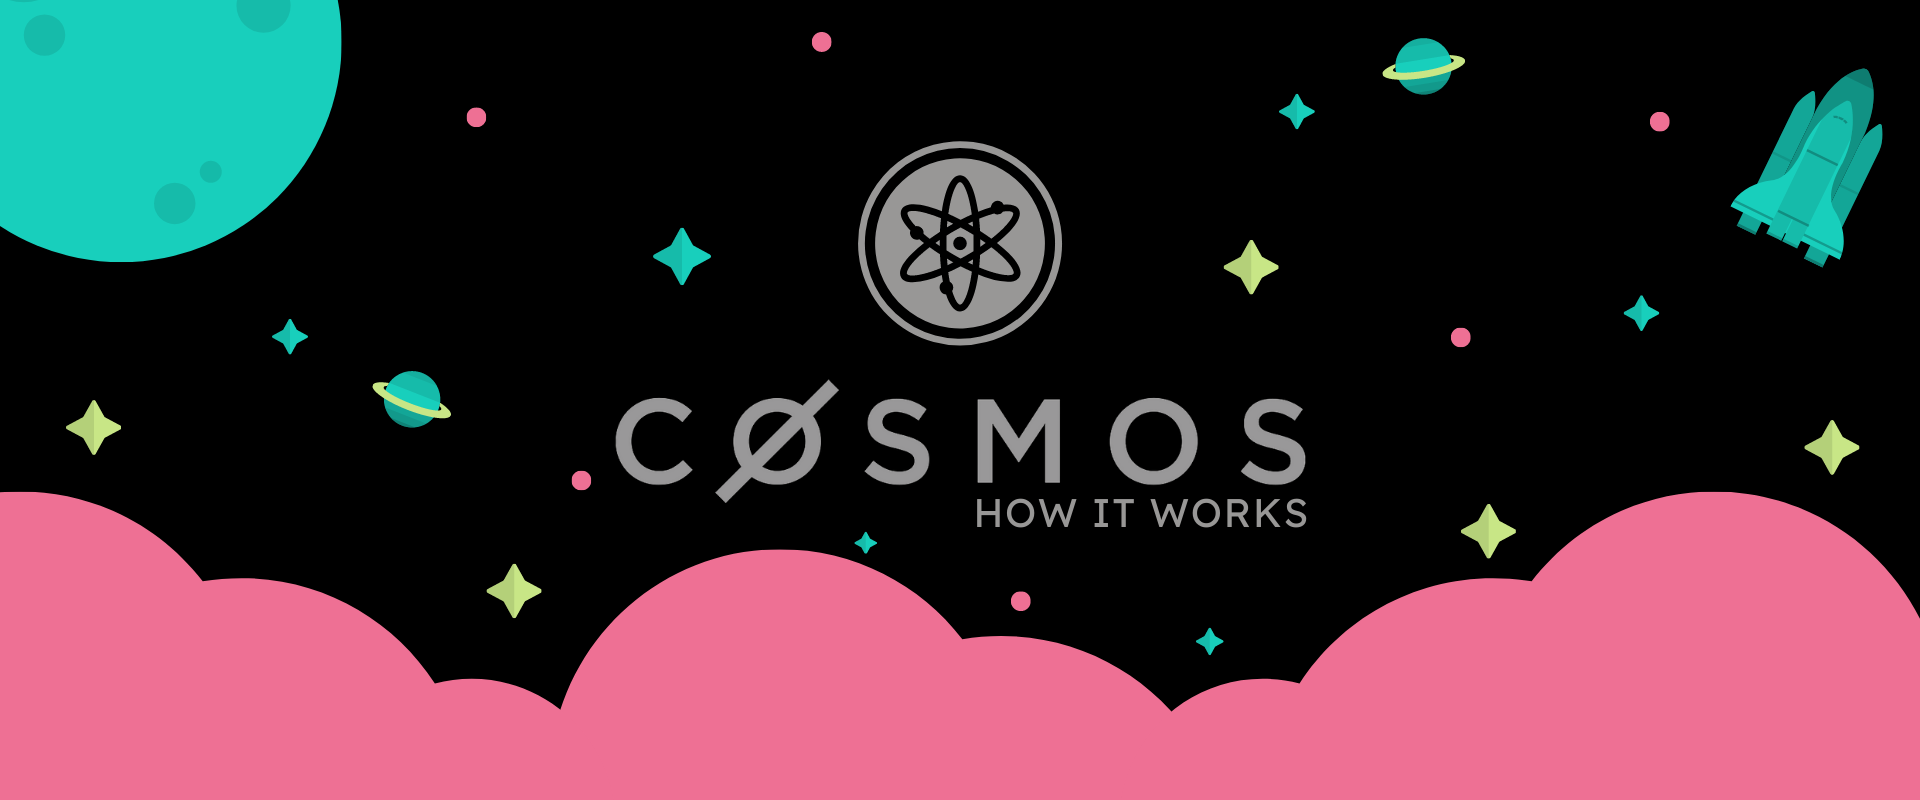 Cosmos Network.png